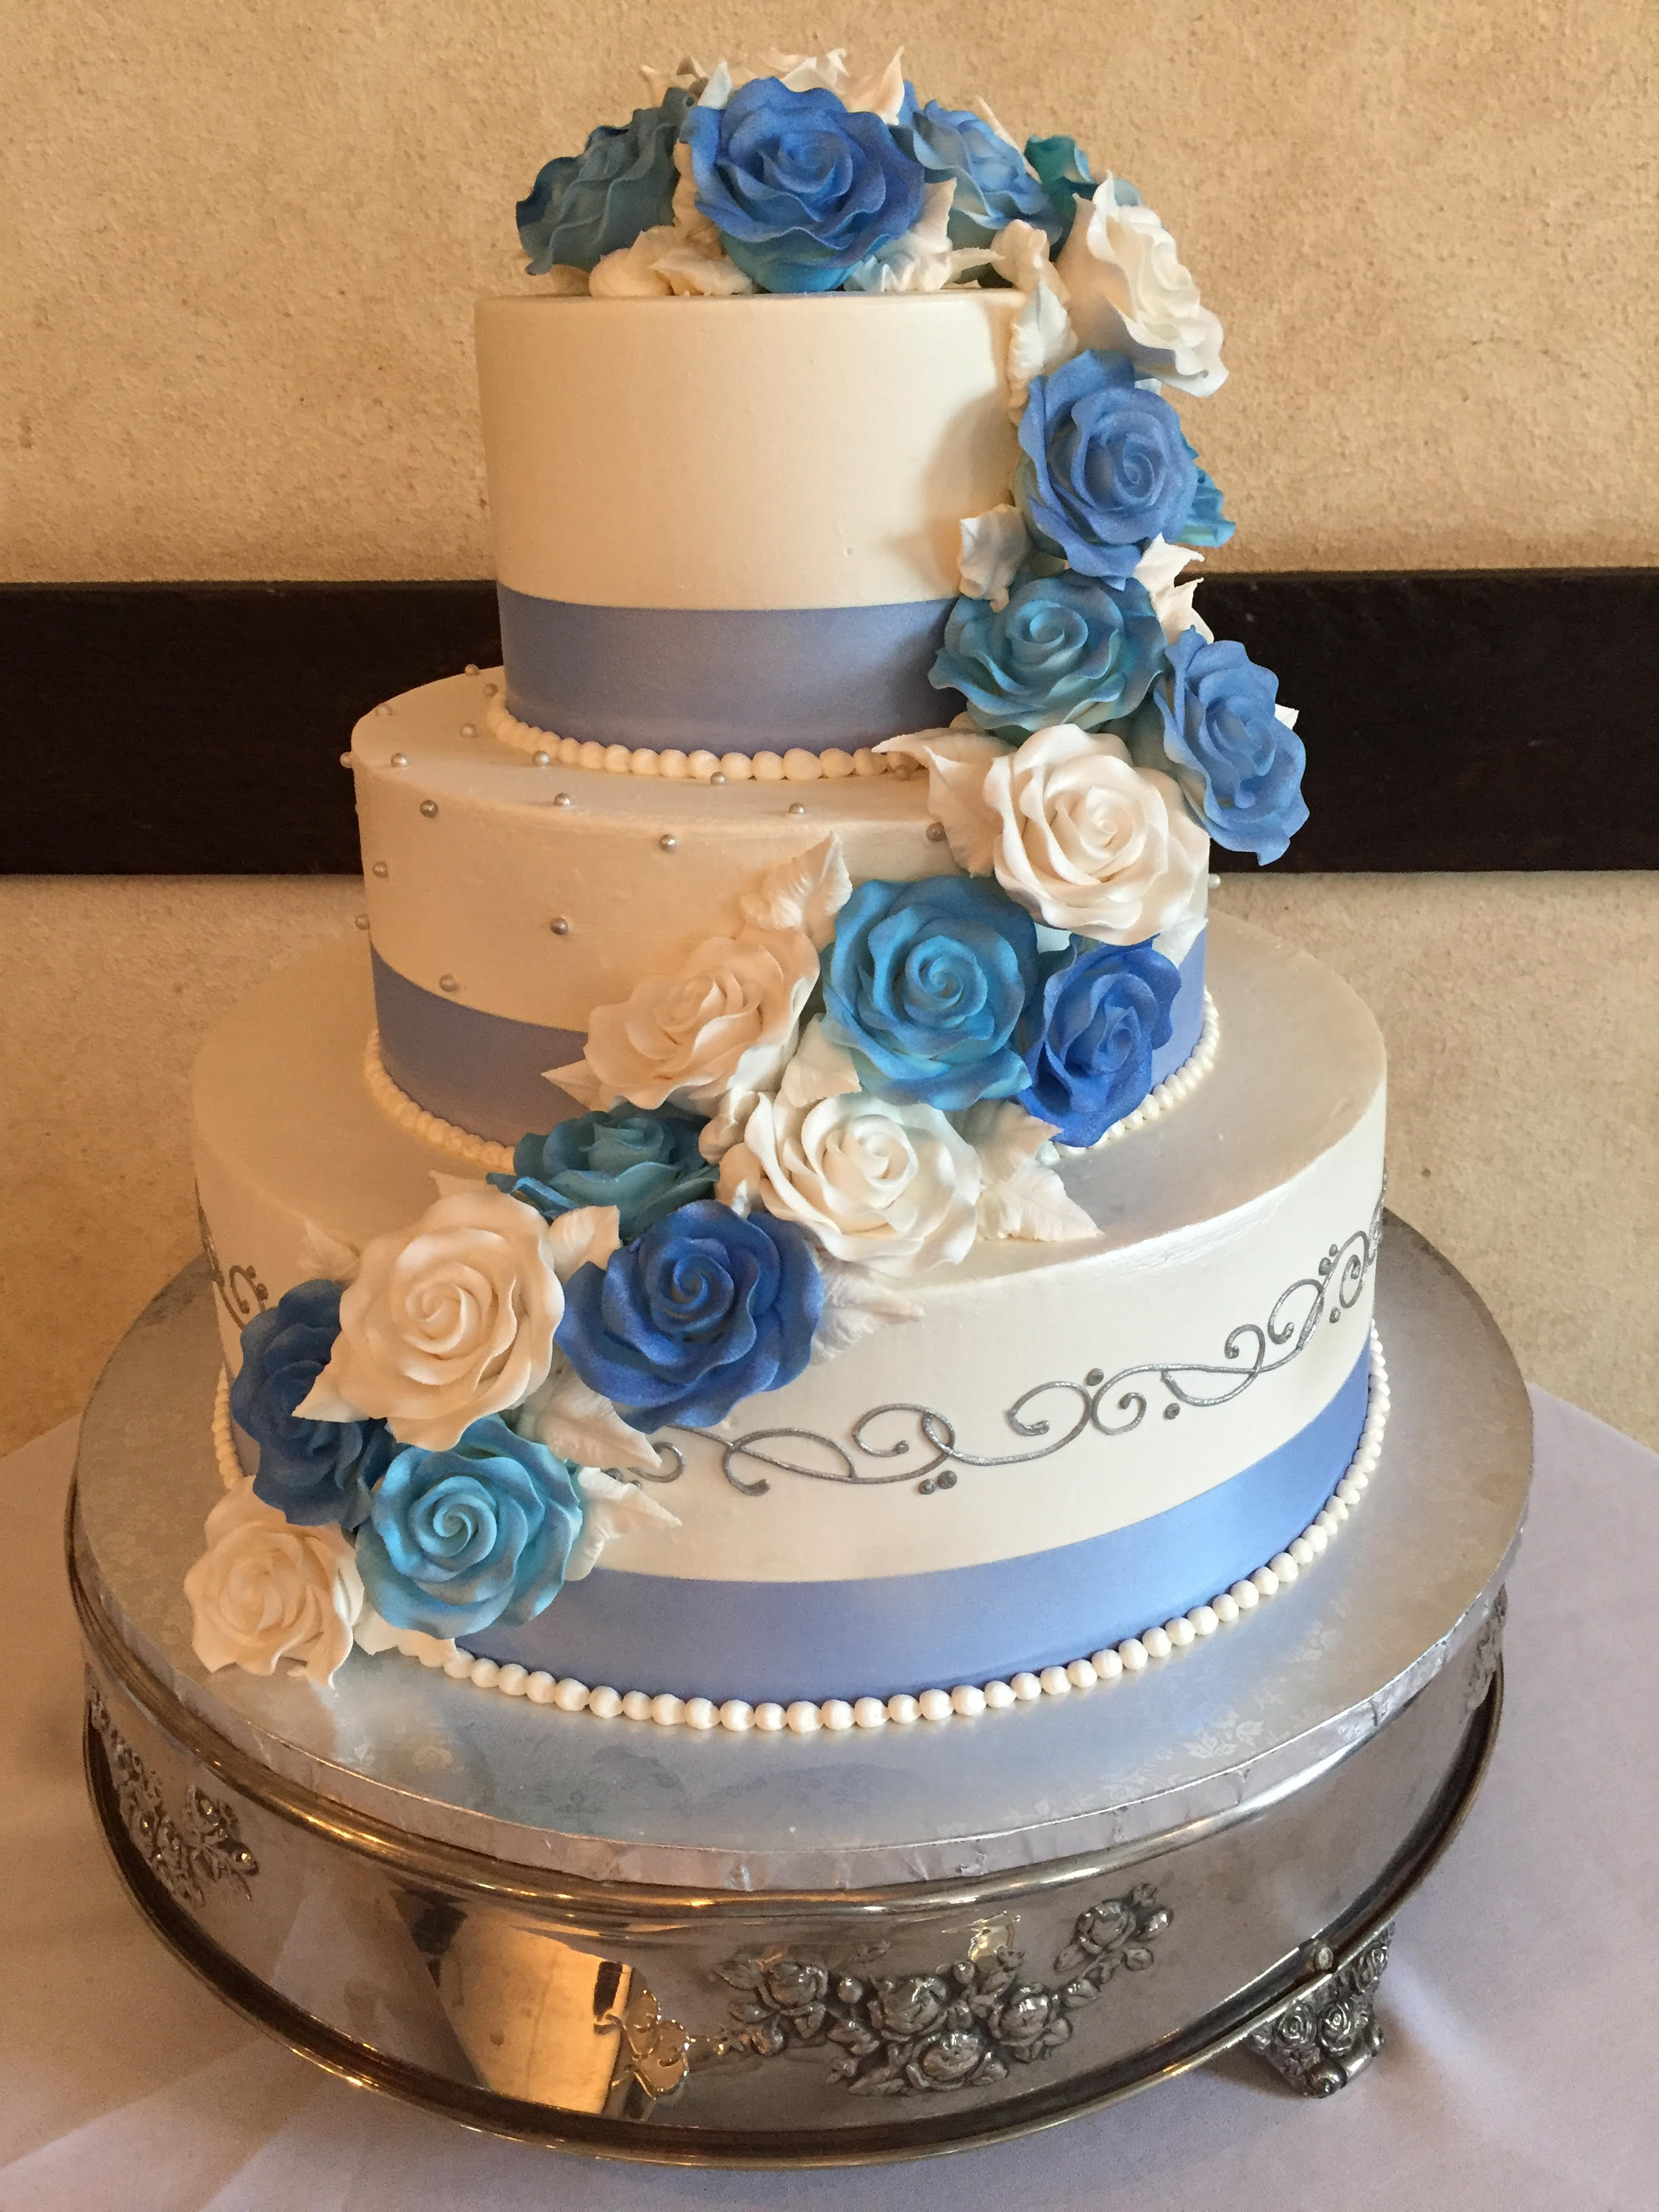 Shades of Blue and White for a Wedding Cake